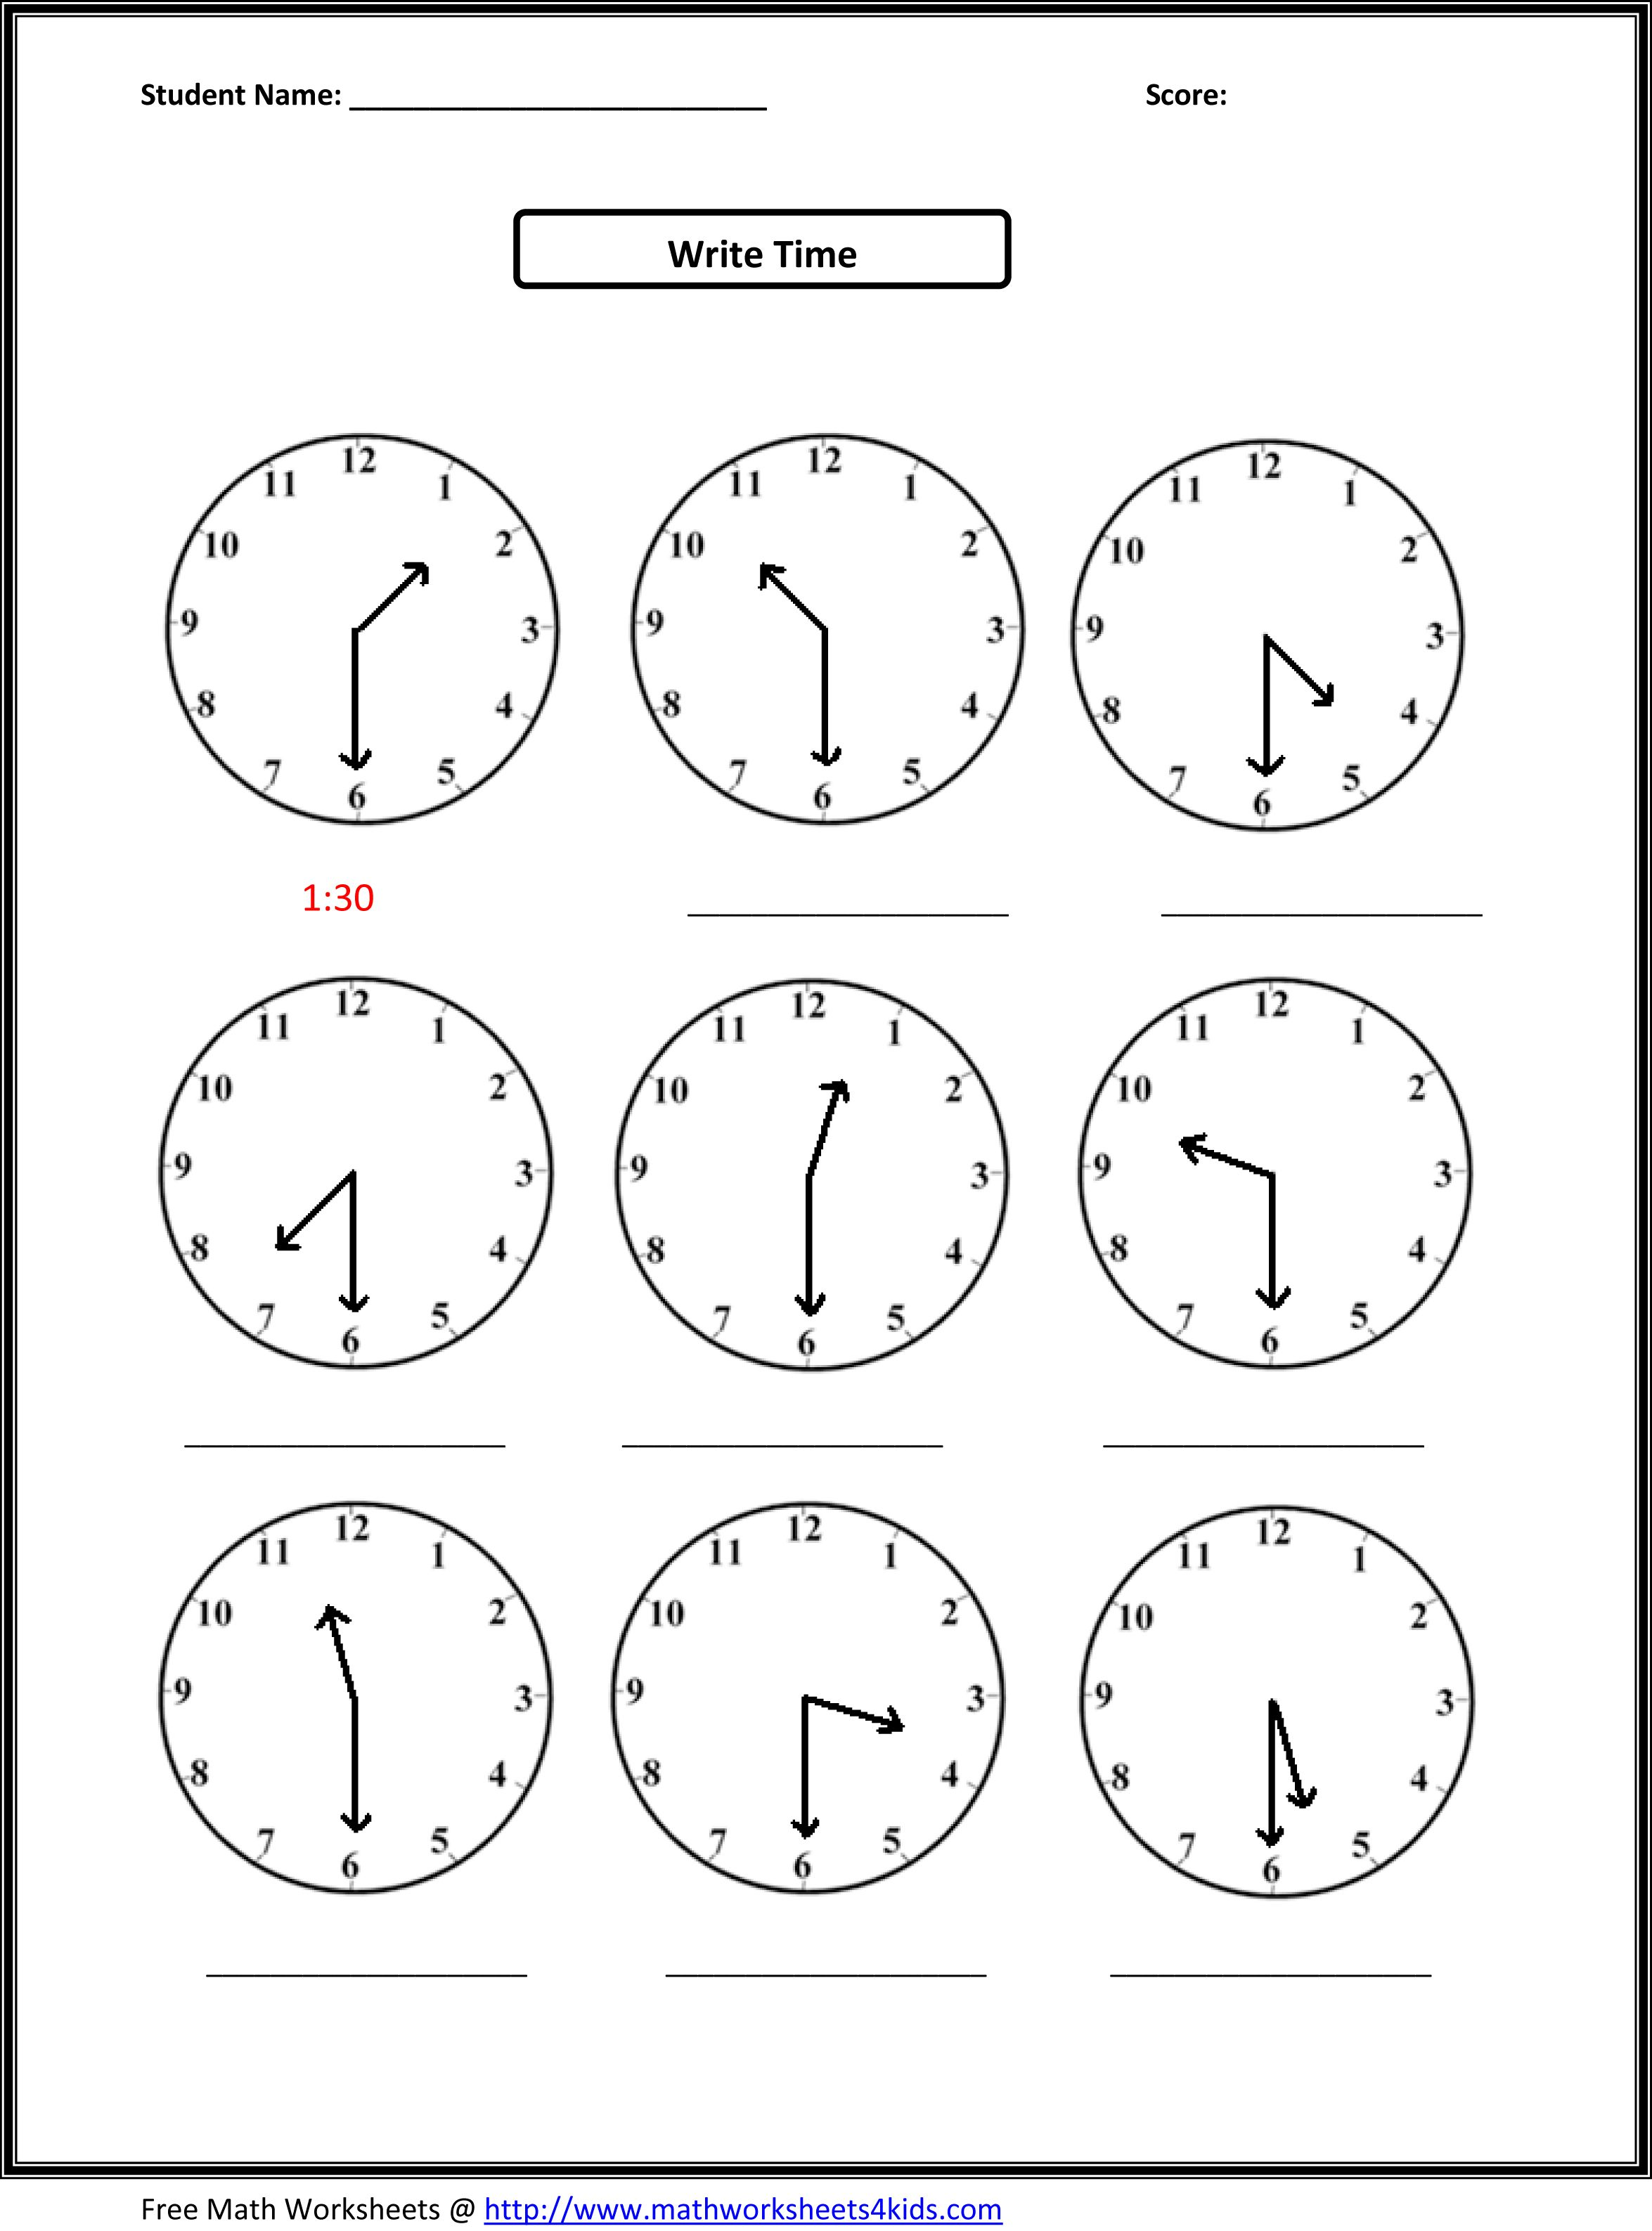 Proatmealus  Mesmerizing Worksheet On Time For Grade   Reocurent With Outstanding Free Printable Telling Time Worksheets Nd Grade  Reocurent With Amusing Point Of View Worksheets For Th Grade Also Simile Worksheets Grade  In Addition First Second Third Worksheets And Irony Practice Worksheet As Well As Timothy Winters Worksheets Additionally Printable Clock Worksheet From Reocurentcom With Proatmealus  Outstanding Worksheet On Time For Grade   Reocurent With Amusing Free Printable Telling Time Worksheets Nd Grade  Reocurent And Mesmerizing Point Of View Worksheets For Th Grade Also Simile Worksheets Grade  In Addition First Second Third Worksheets From Reocurentcom